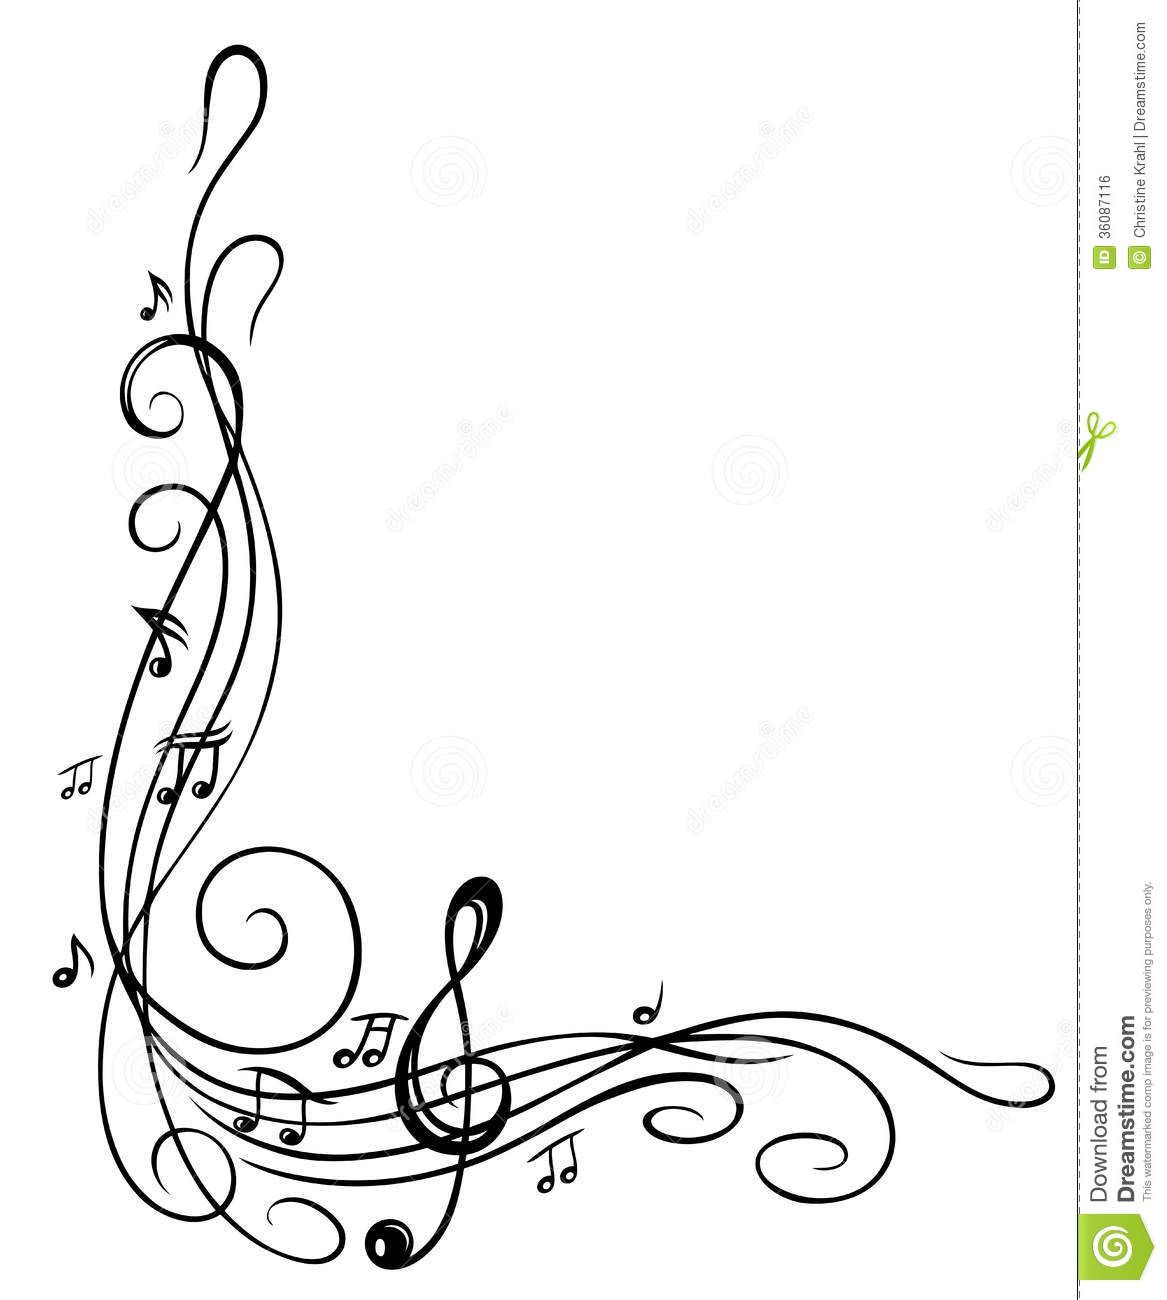 Image for Free Clip Art Musical Notes Border Pix For Music.